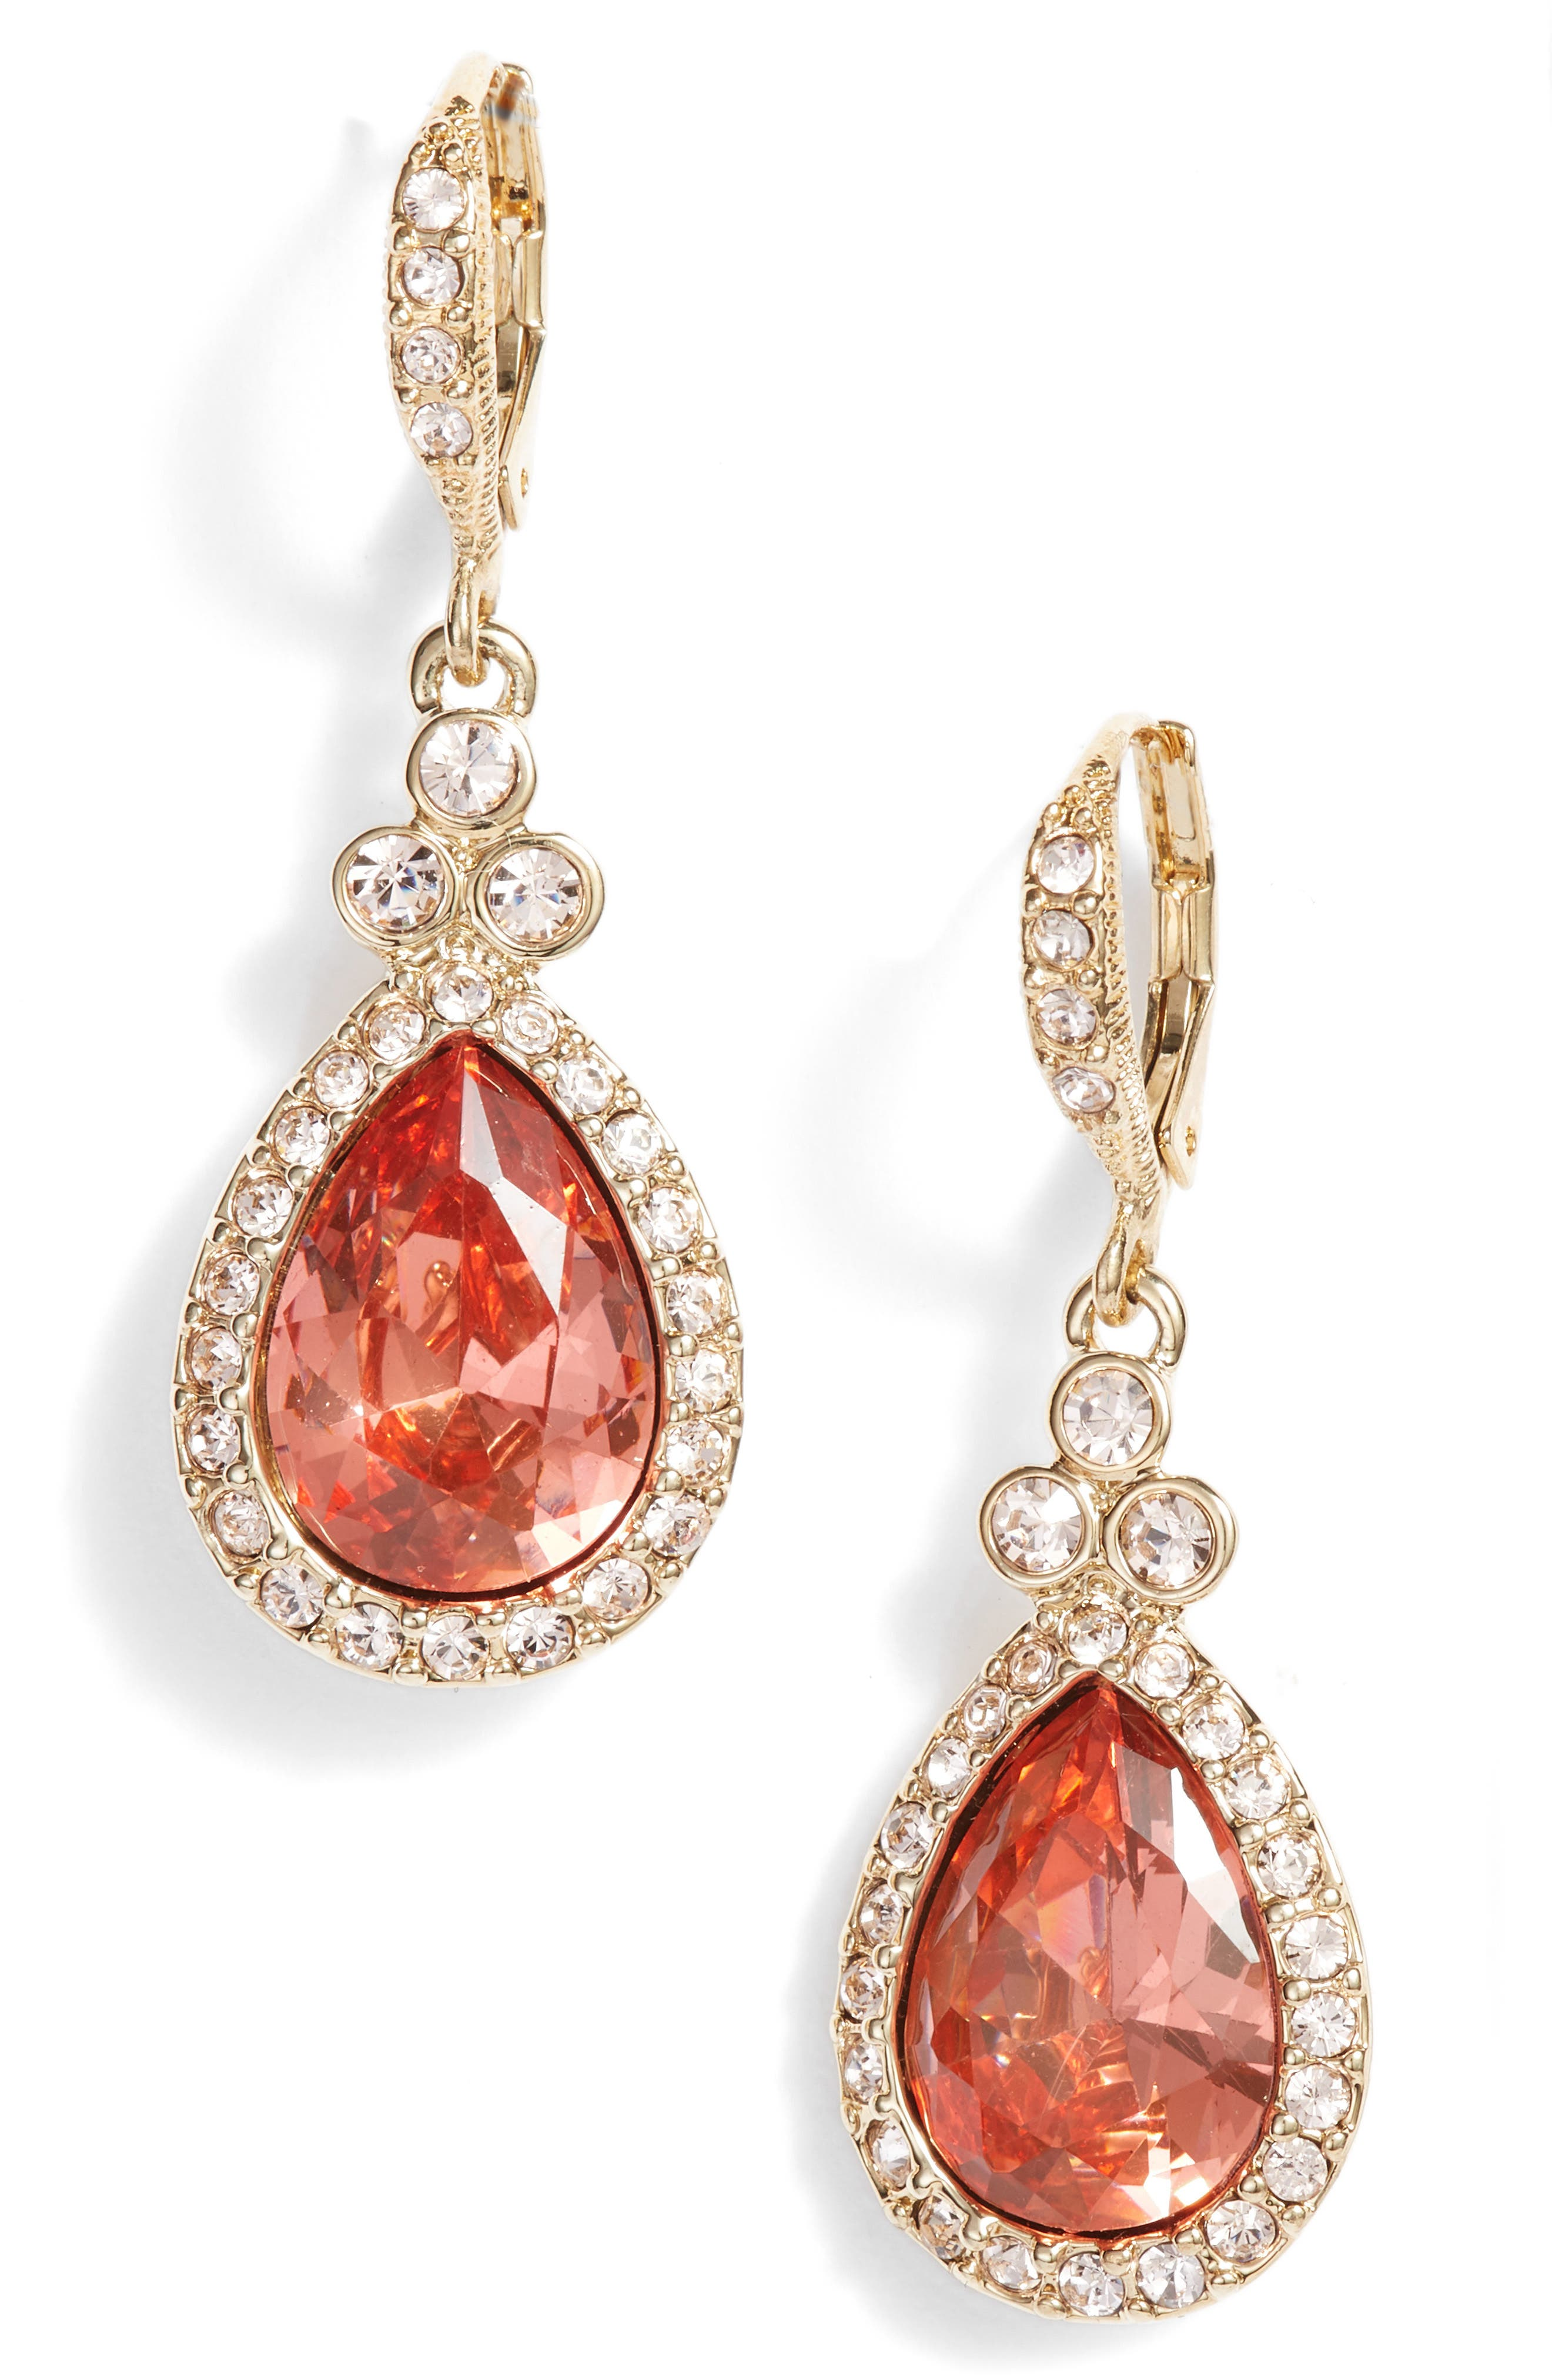 Pavé Pear Drop Earrings,                             Main thumbnail 1, color,                             Gold/ Peach/ Silk